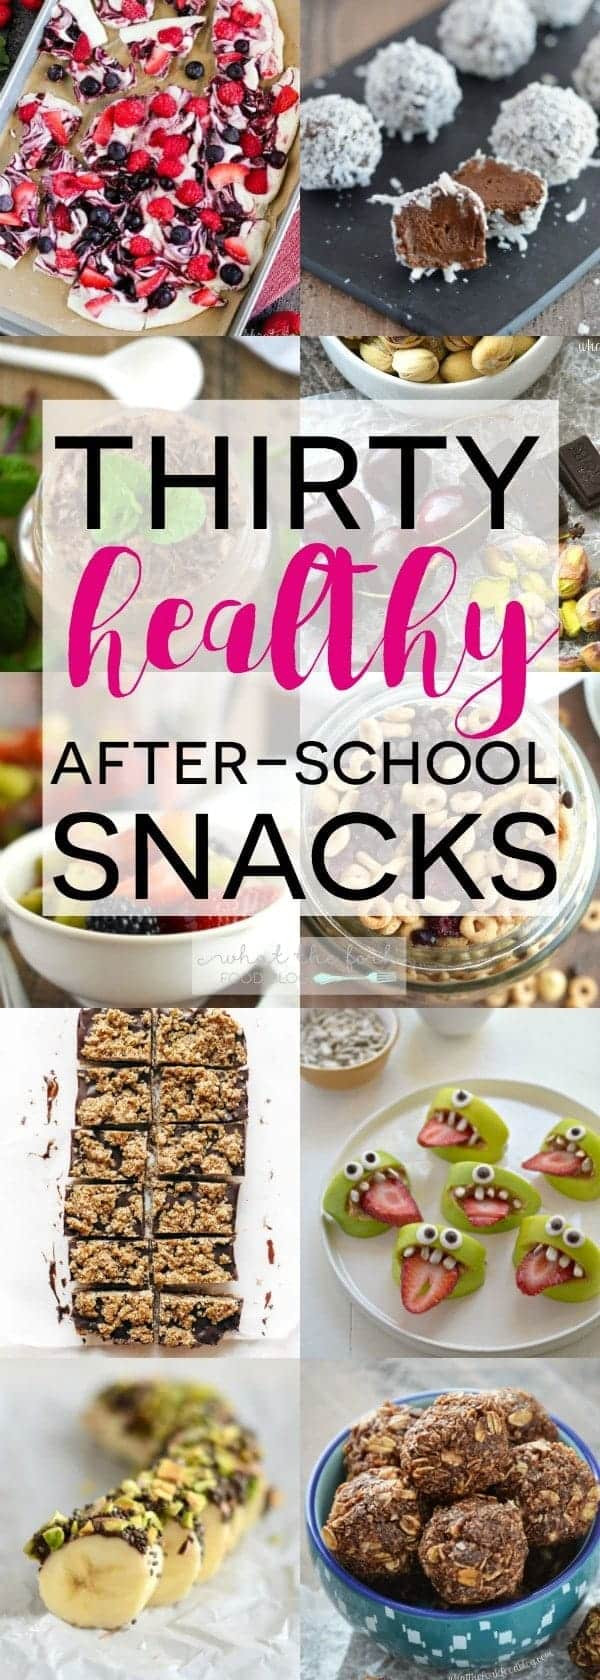 Healthy After School Snacks  30 Healthy After School Snacks What the Fork